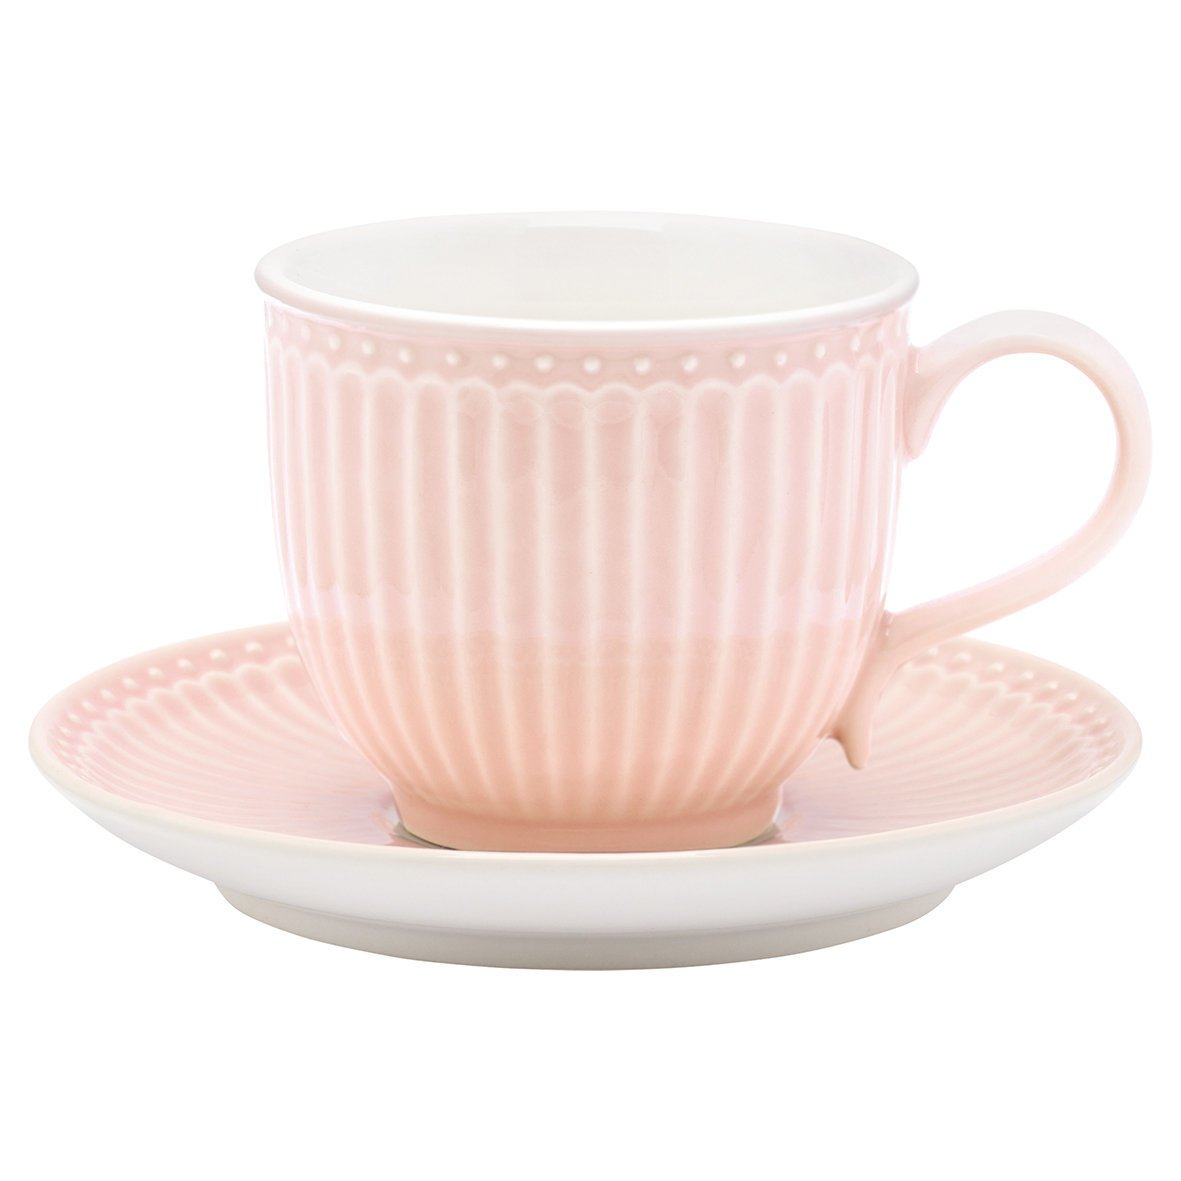 GreenGate Tasse & Untertasse Alice